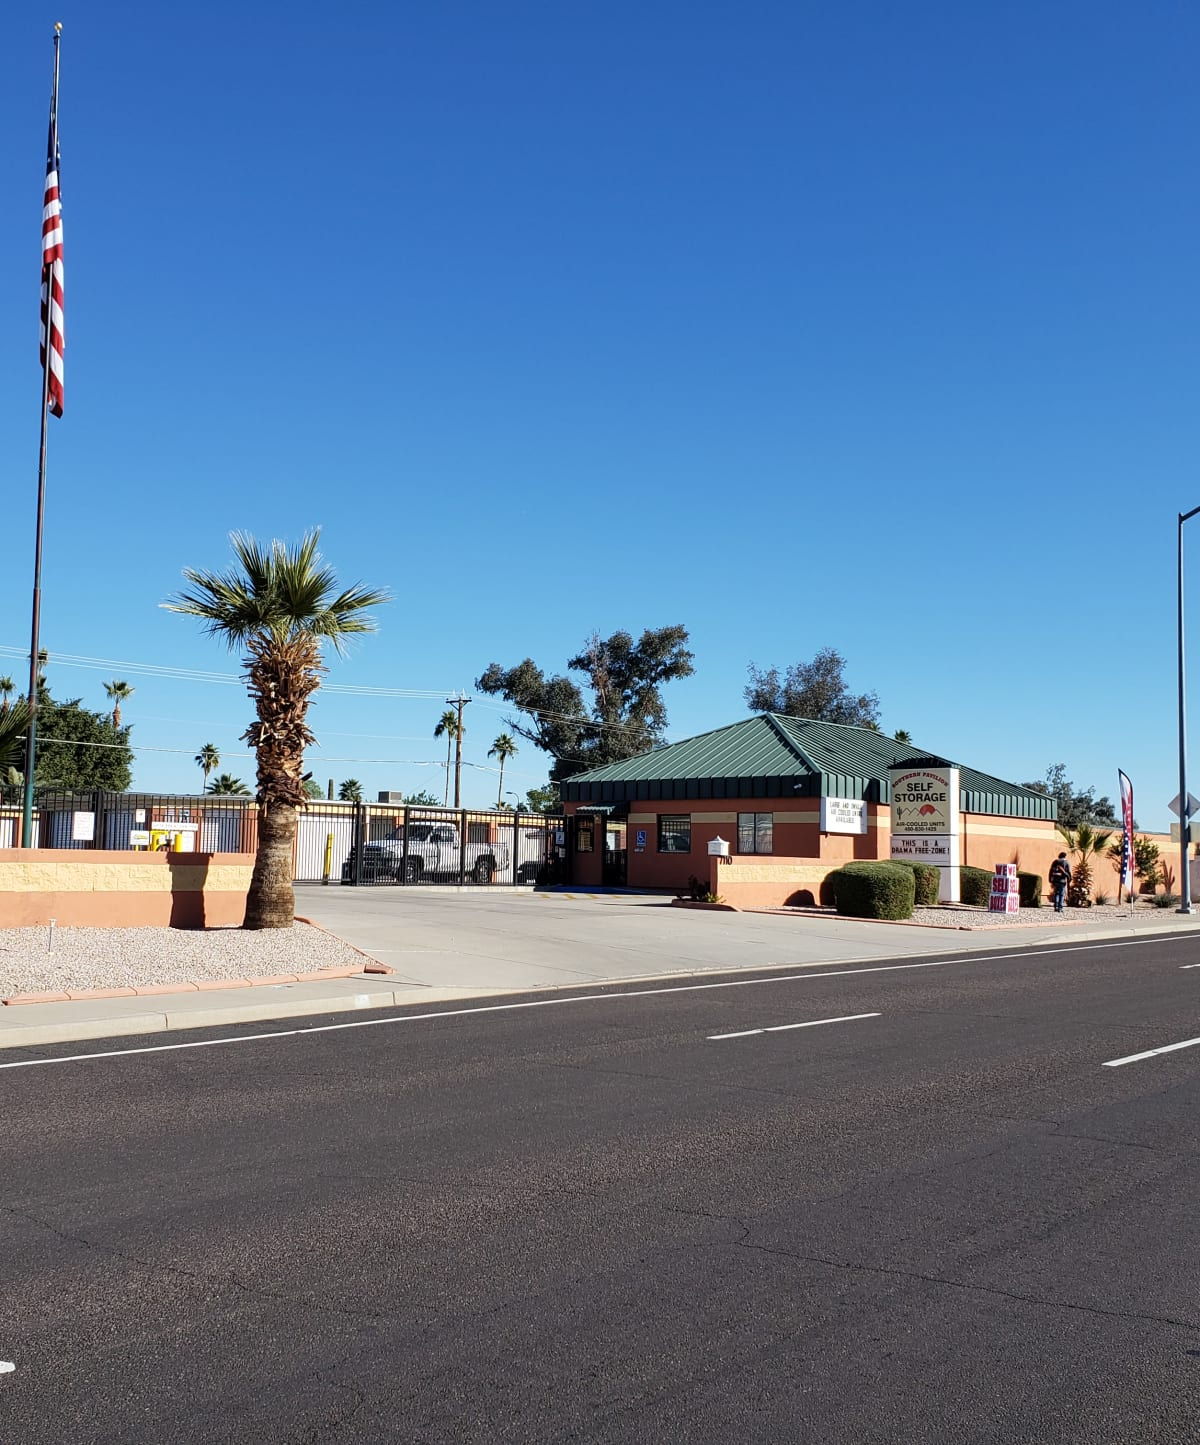 Southern Pavilion Self Storage in Mesa, Arizona